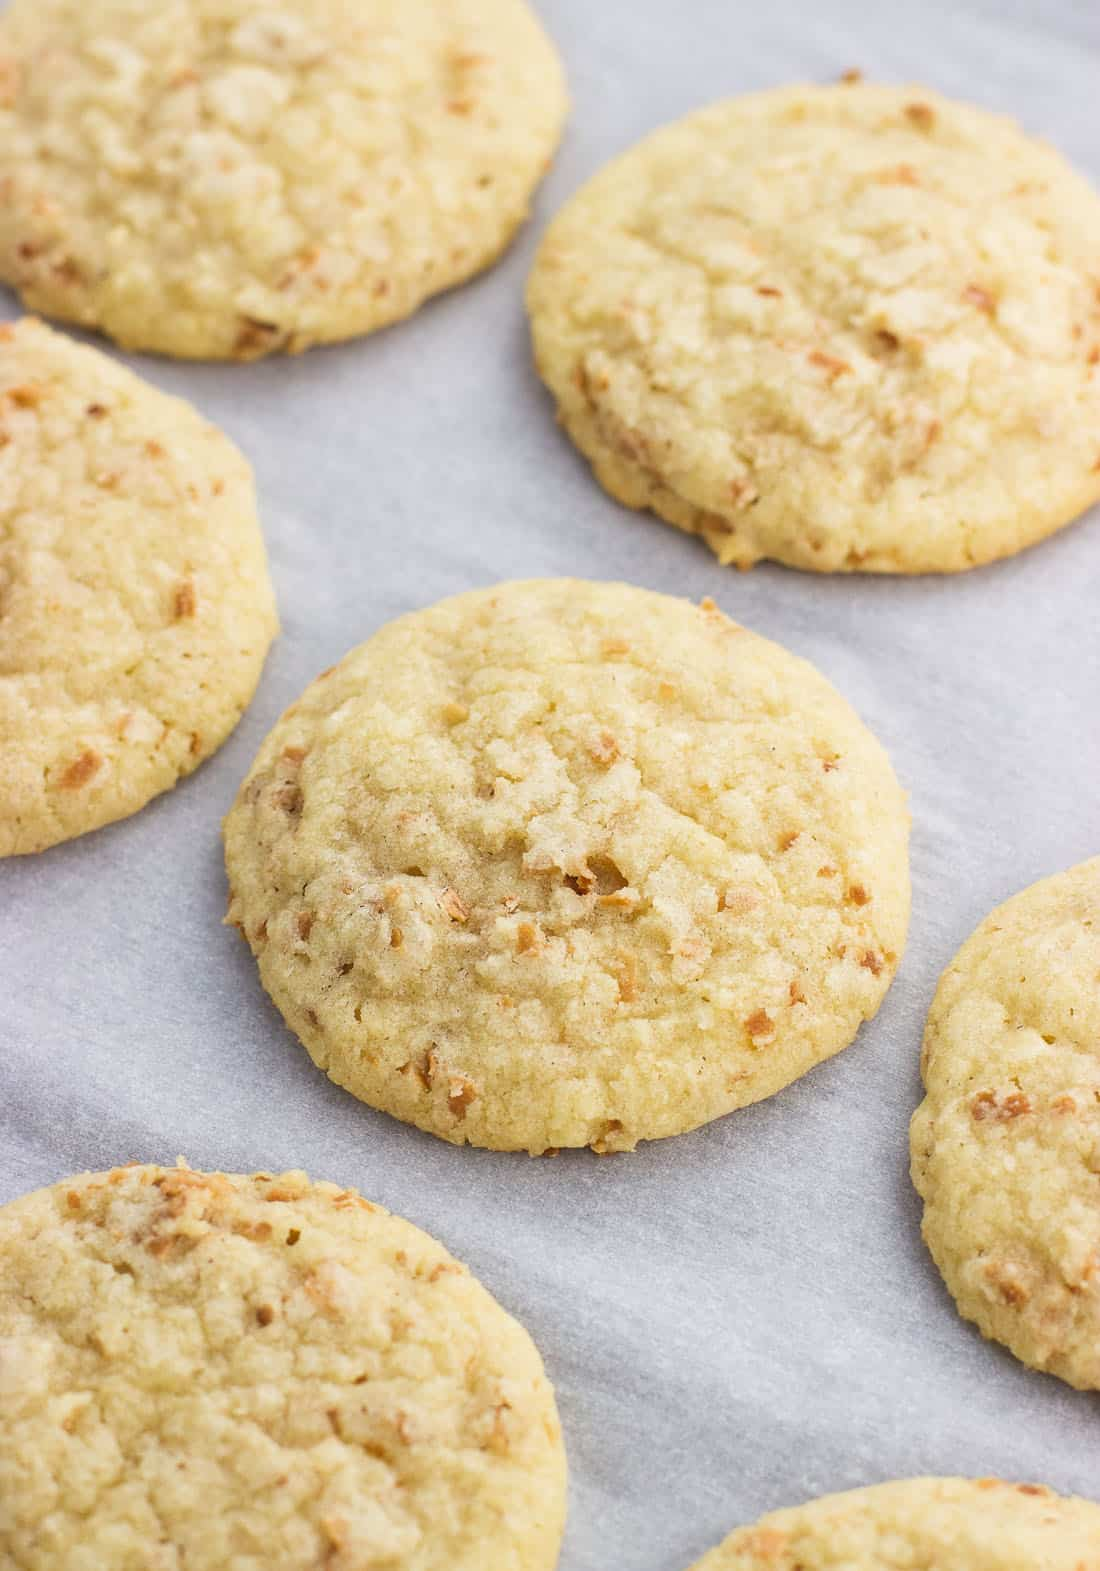 Cookies on a parchment-lined baking sheet.